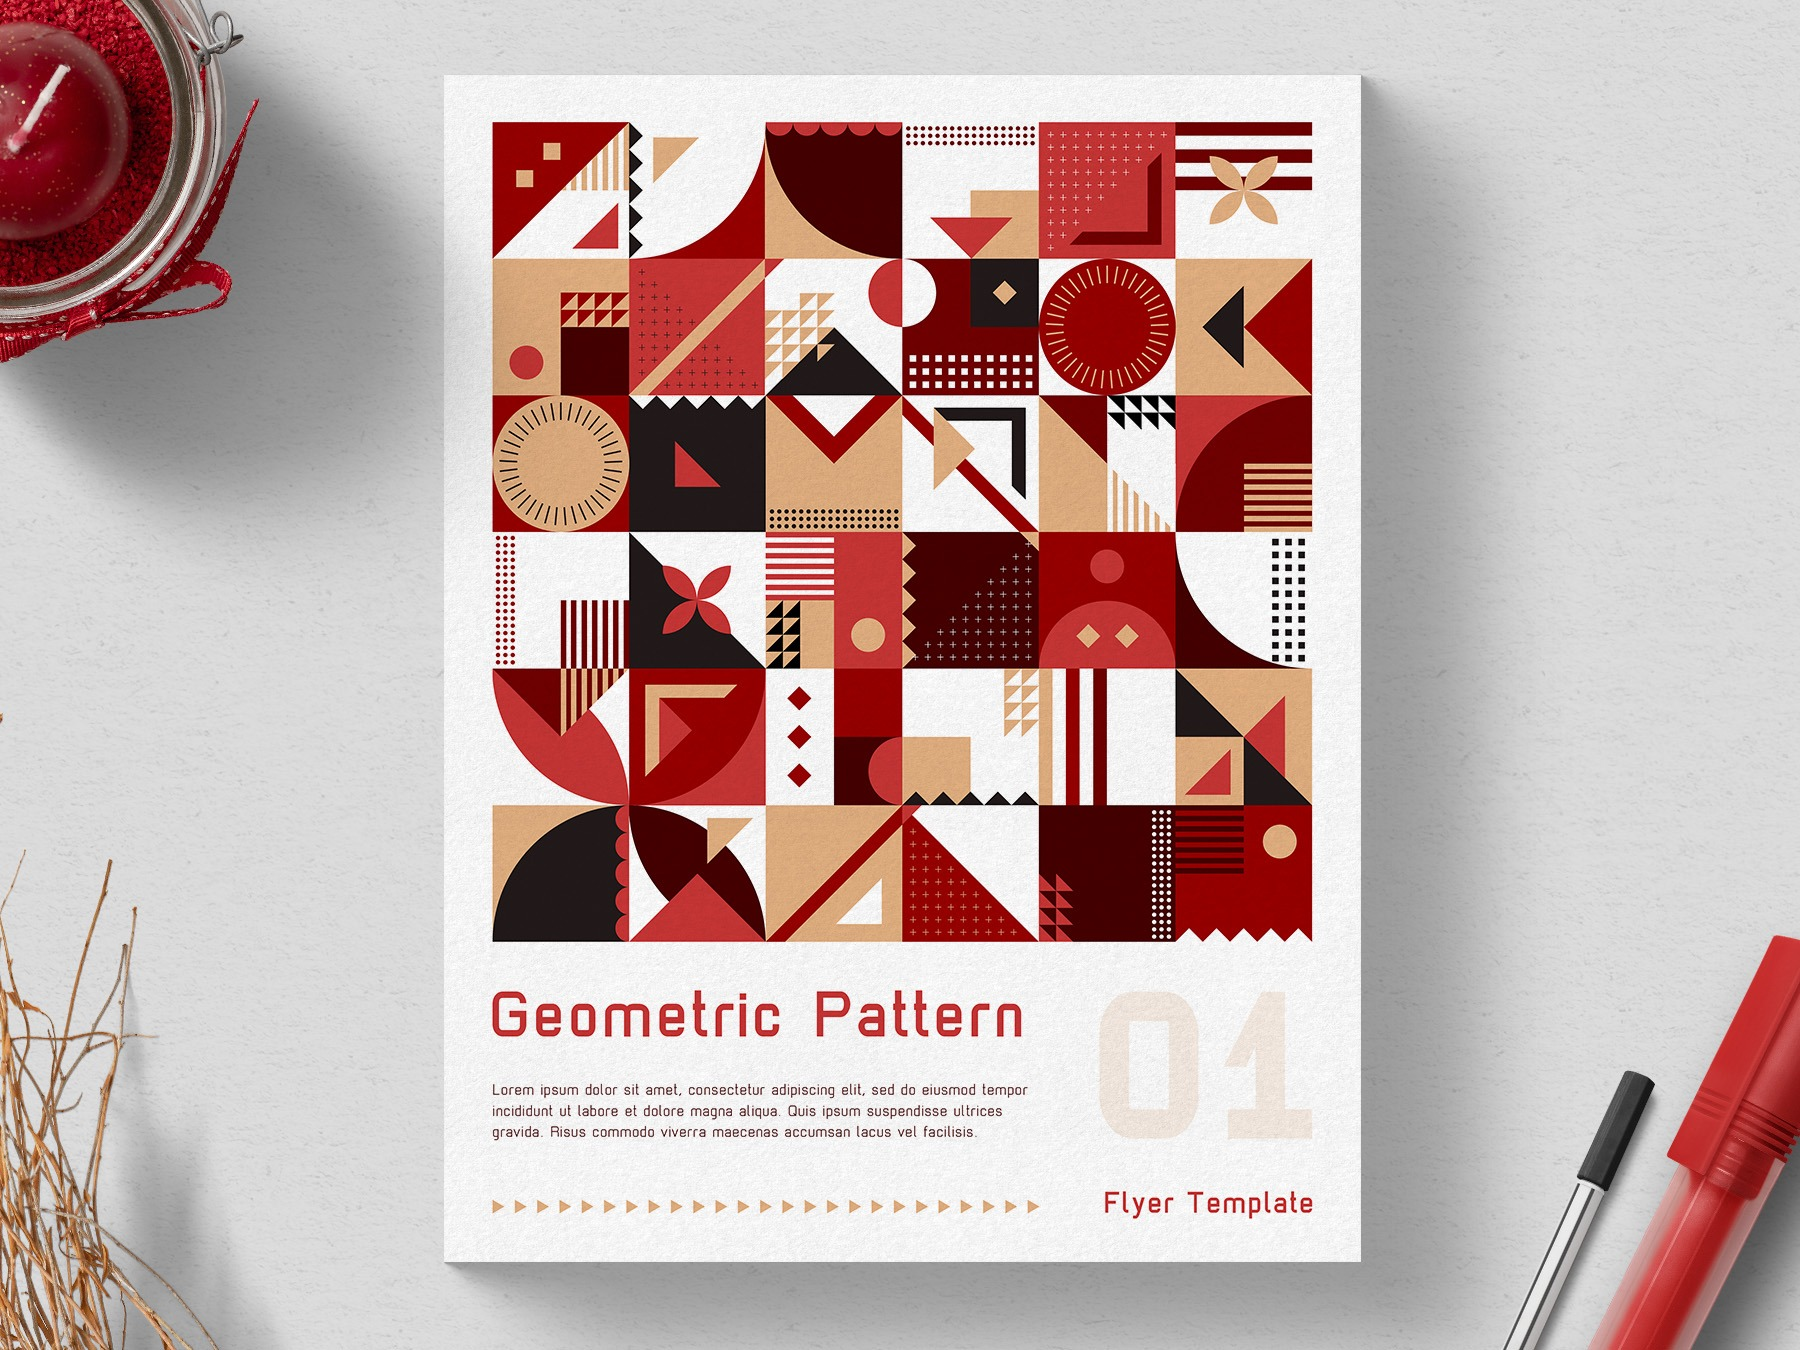 Free Flyer Template - Geometric Pattern